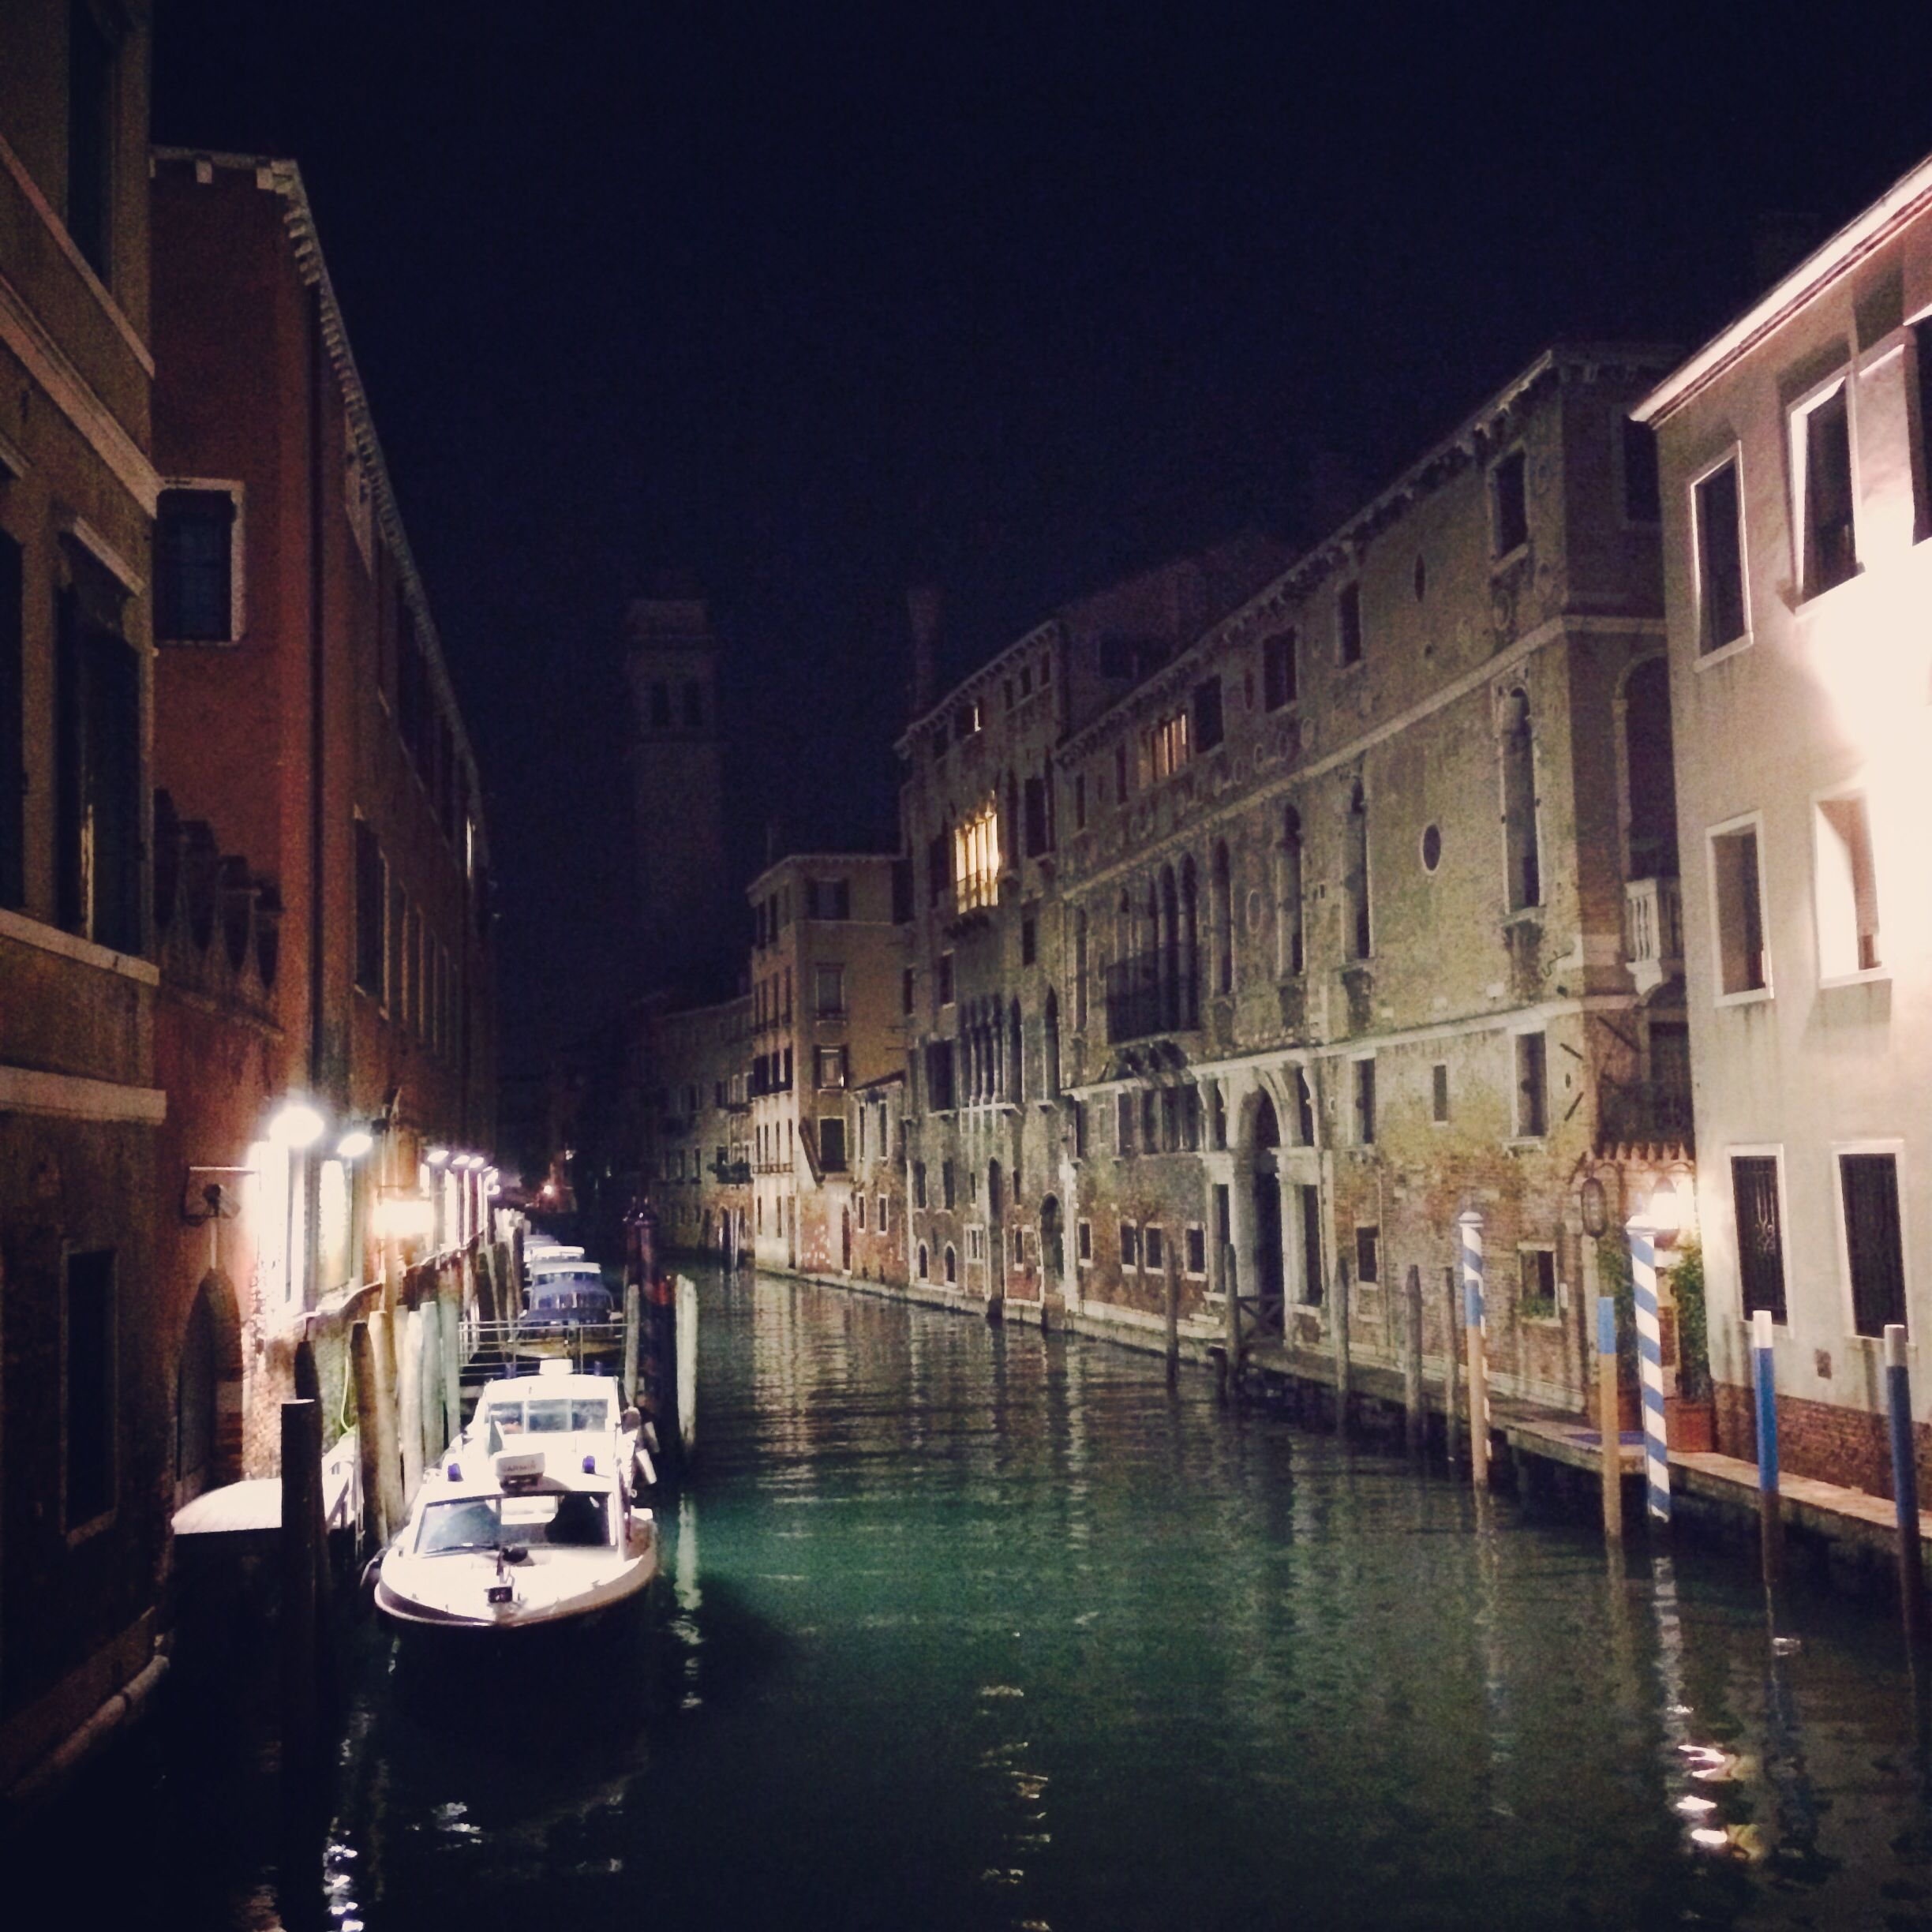 The canals of Venice after dark